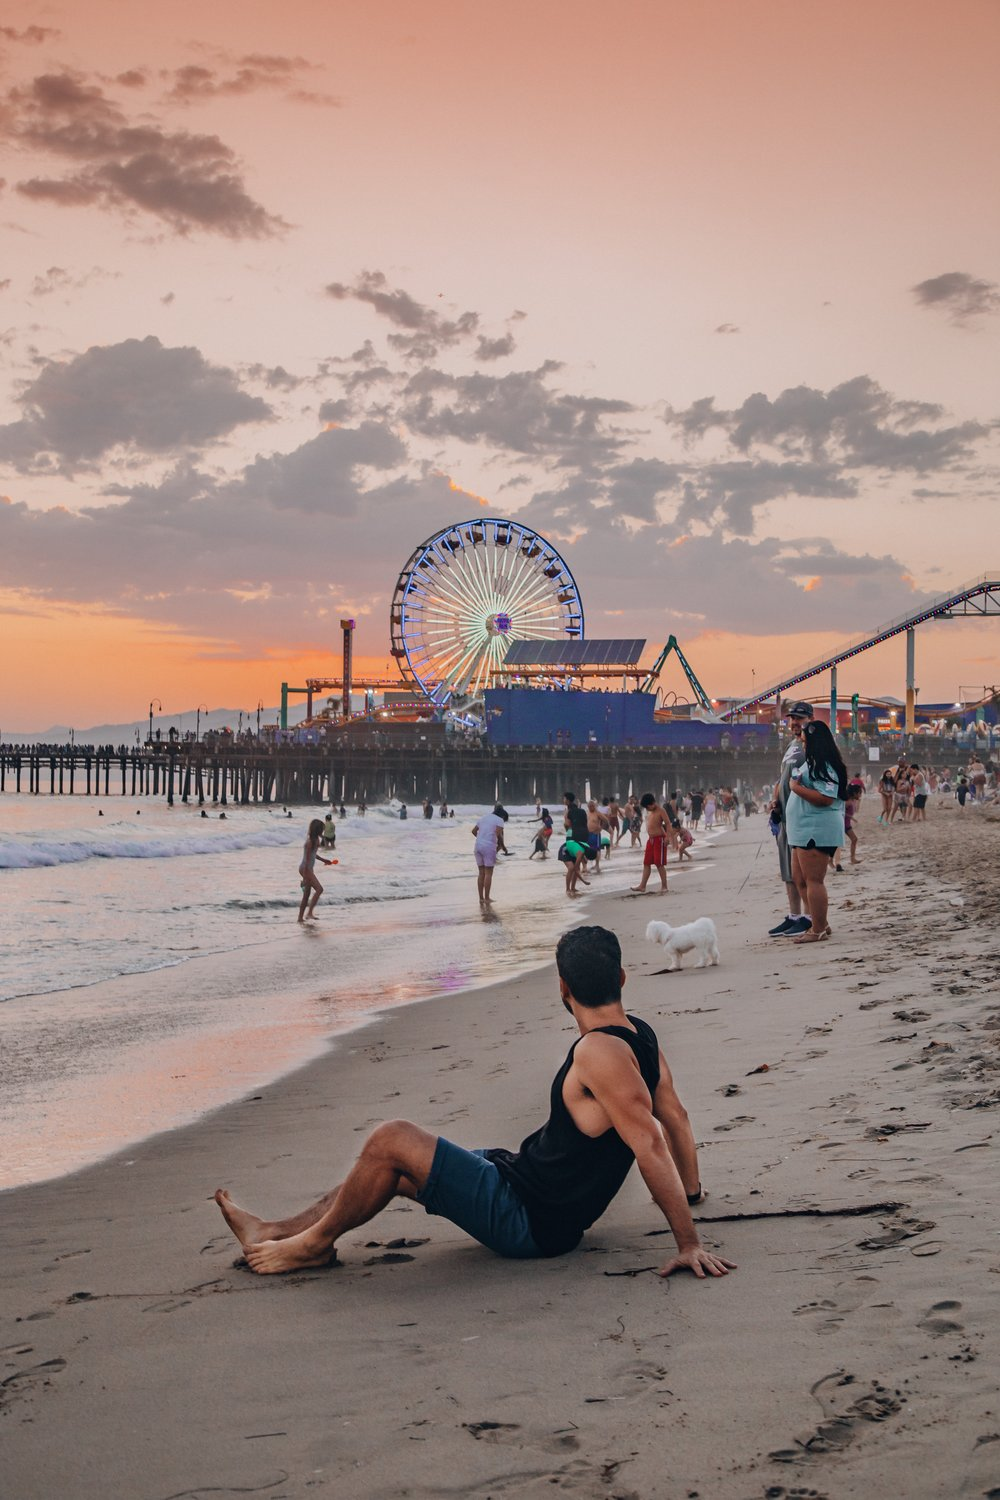 The famous Santa Monica Pier at sunset is such a vibrant place.